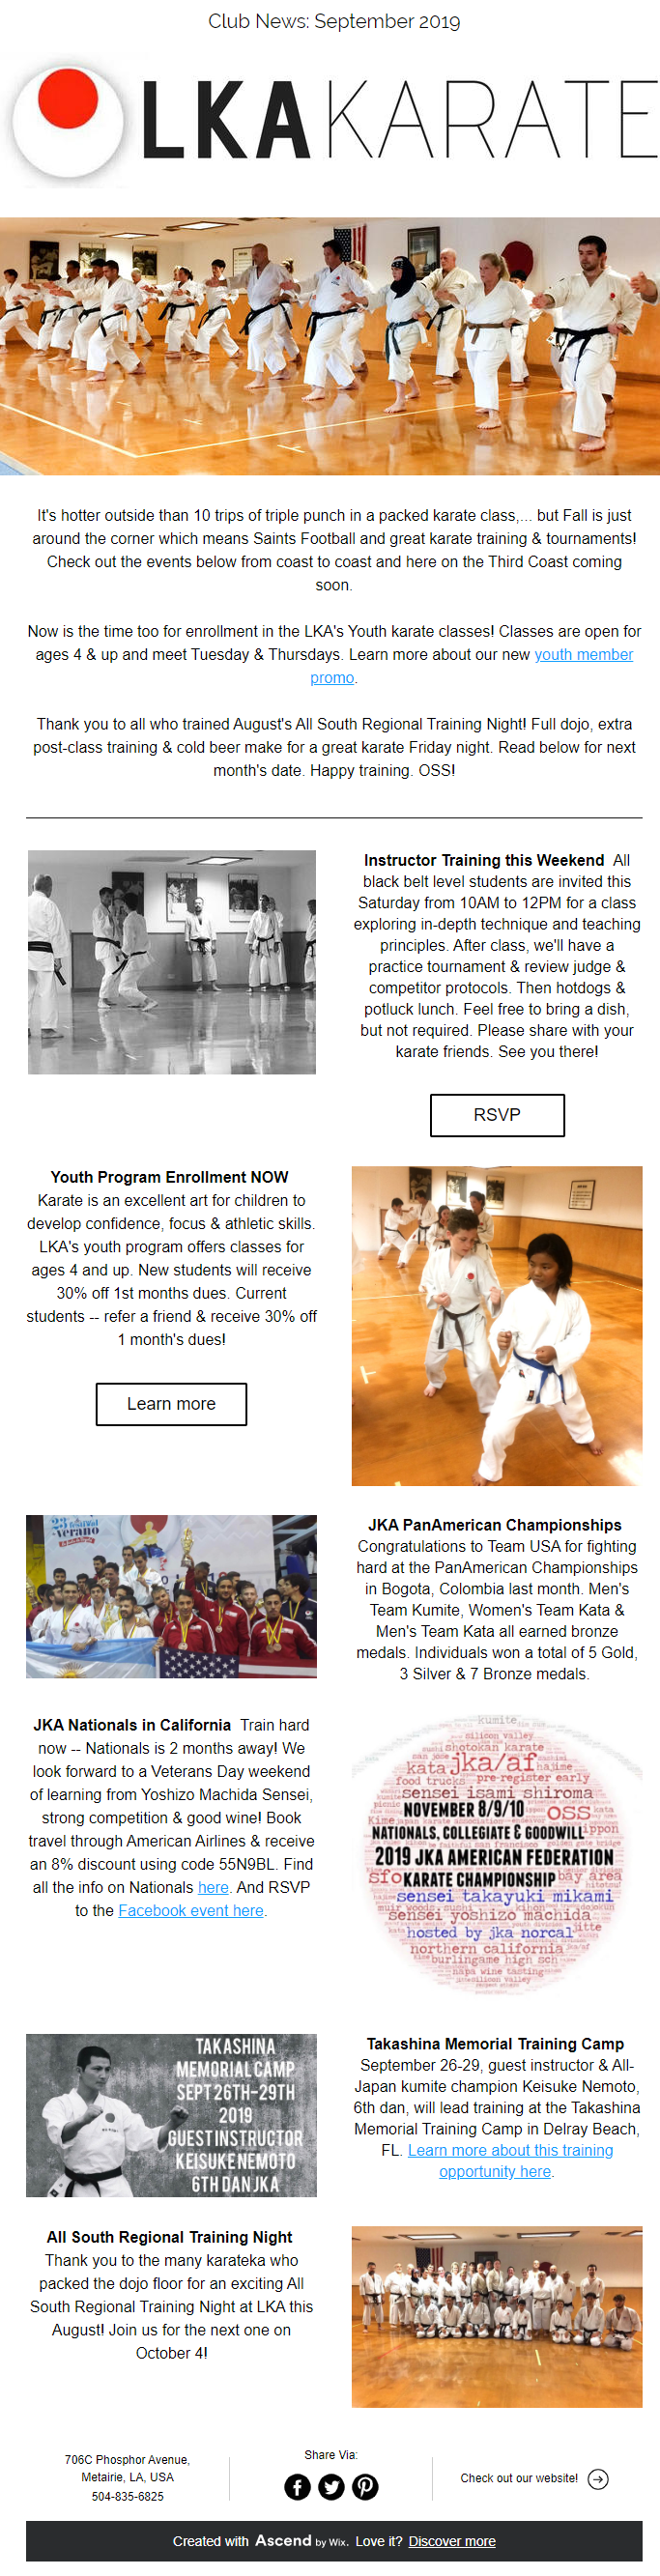 Karate students - adult and youth - train hard every day to develop physical and mental strength at LKA dojo